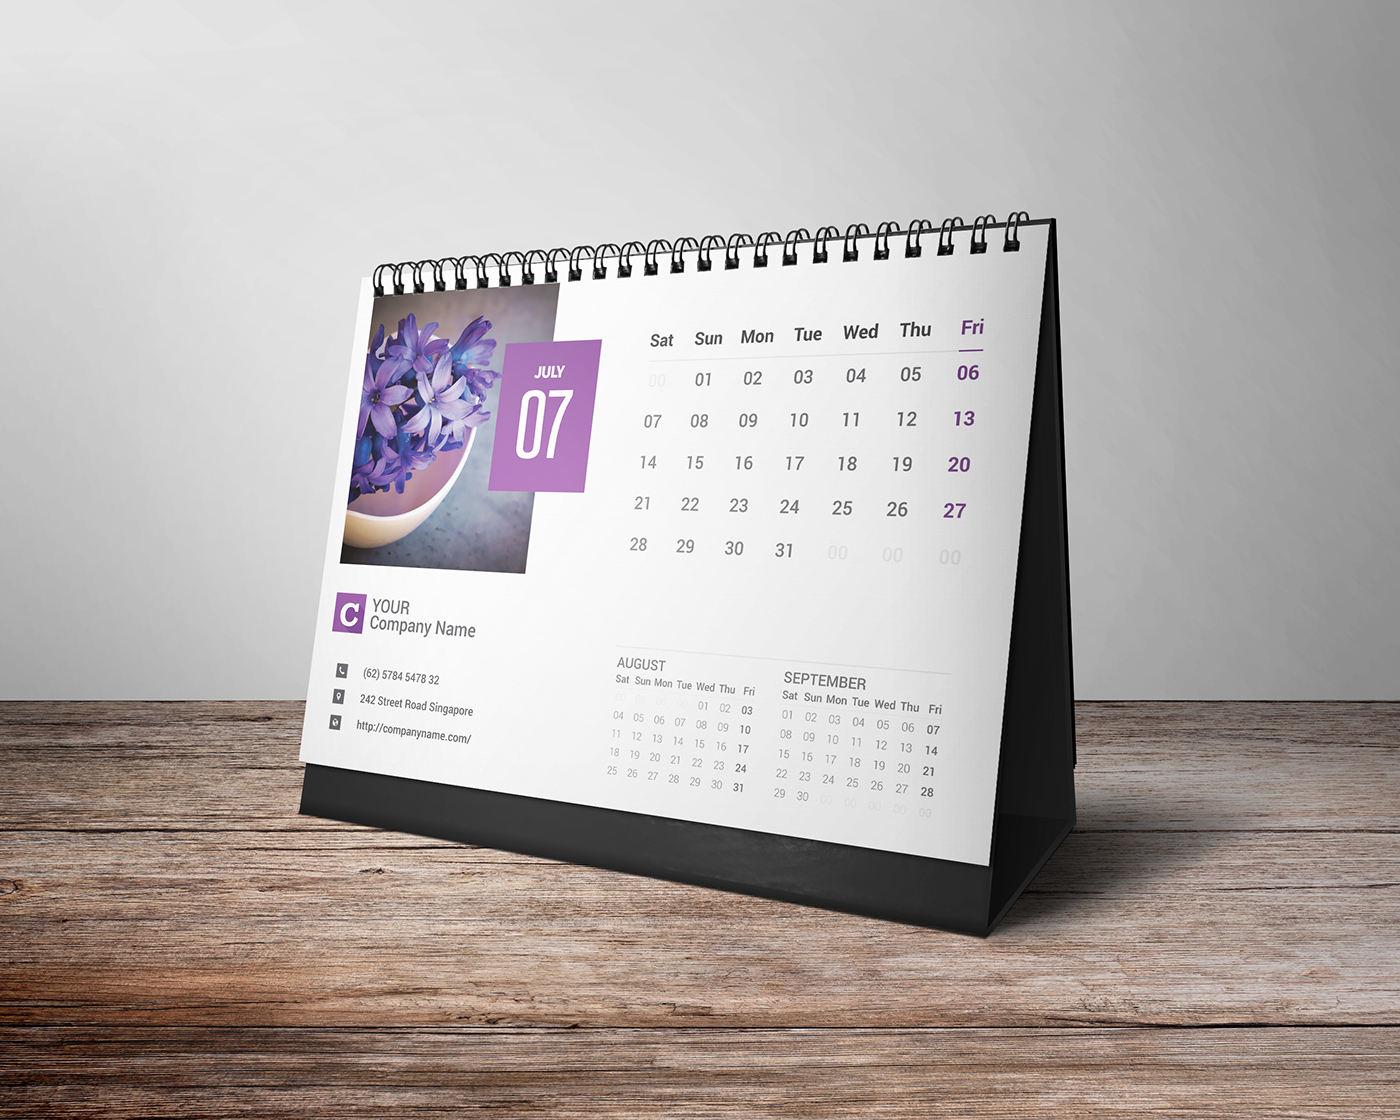 Calendar Design With Pictures : Creative calendar designs for easyprint